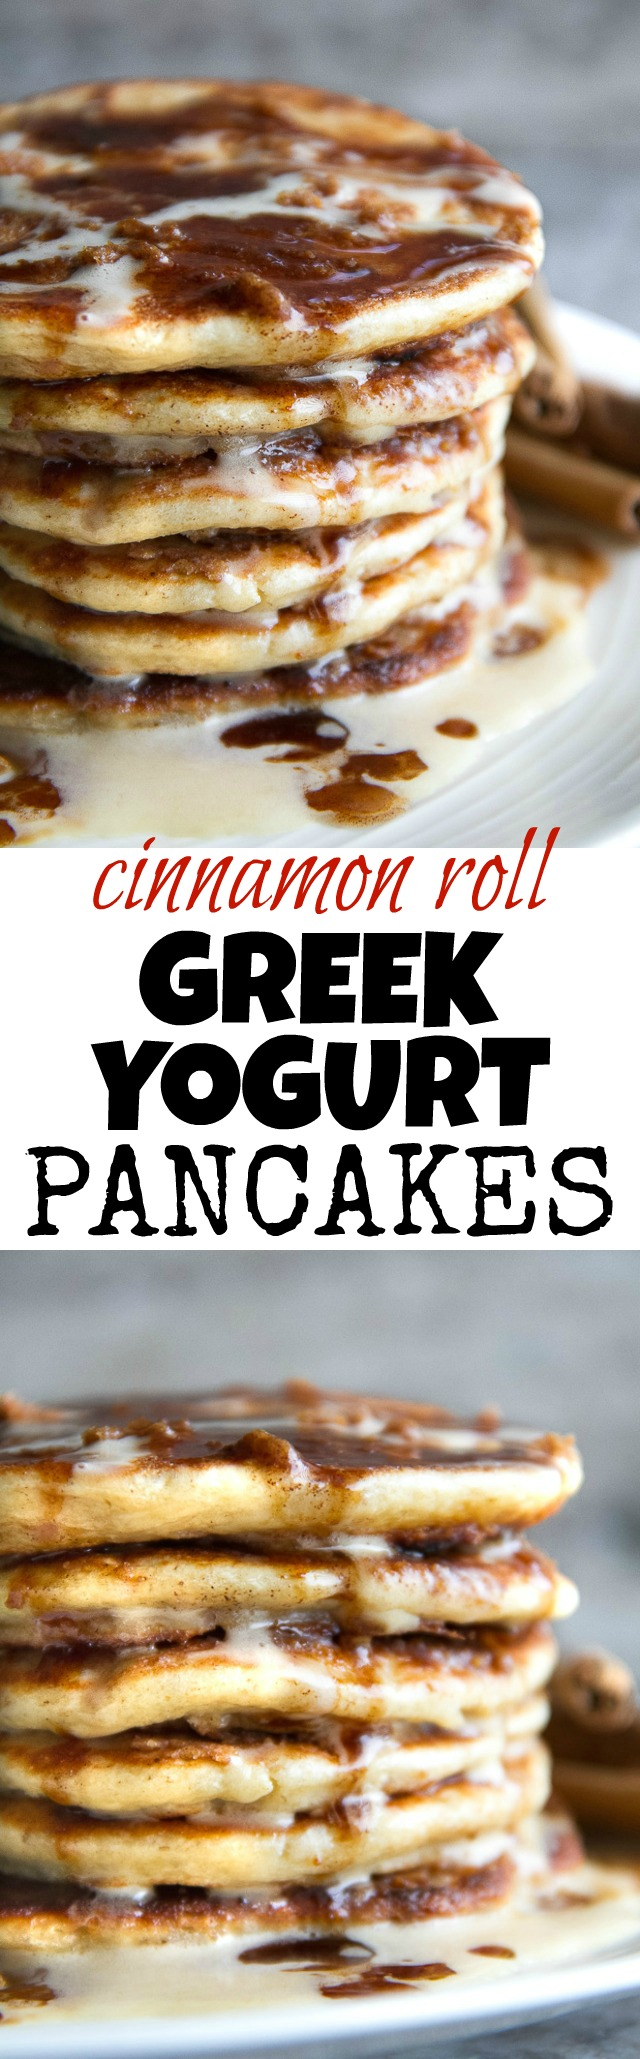 Cinnamon Roll Greek Yogurt Pancakes - these DELICIOUS light and fluffy pancakes taste just like a warm cinnamon roll and will keep you satisfied all morning with over 20g of whole food protein!   runningwithspoons.com #glutenfree #healthy #breakfast